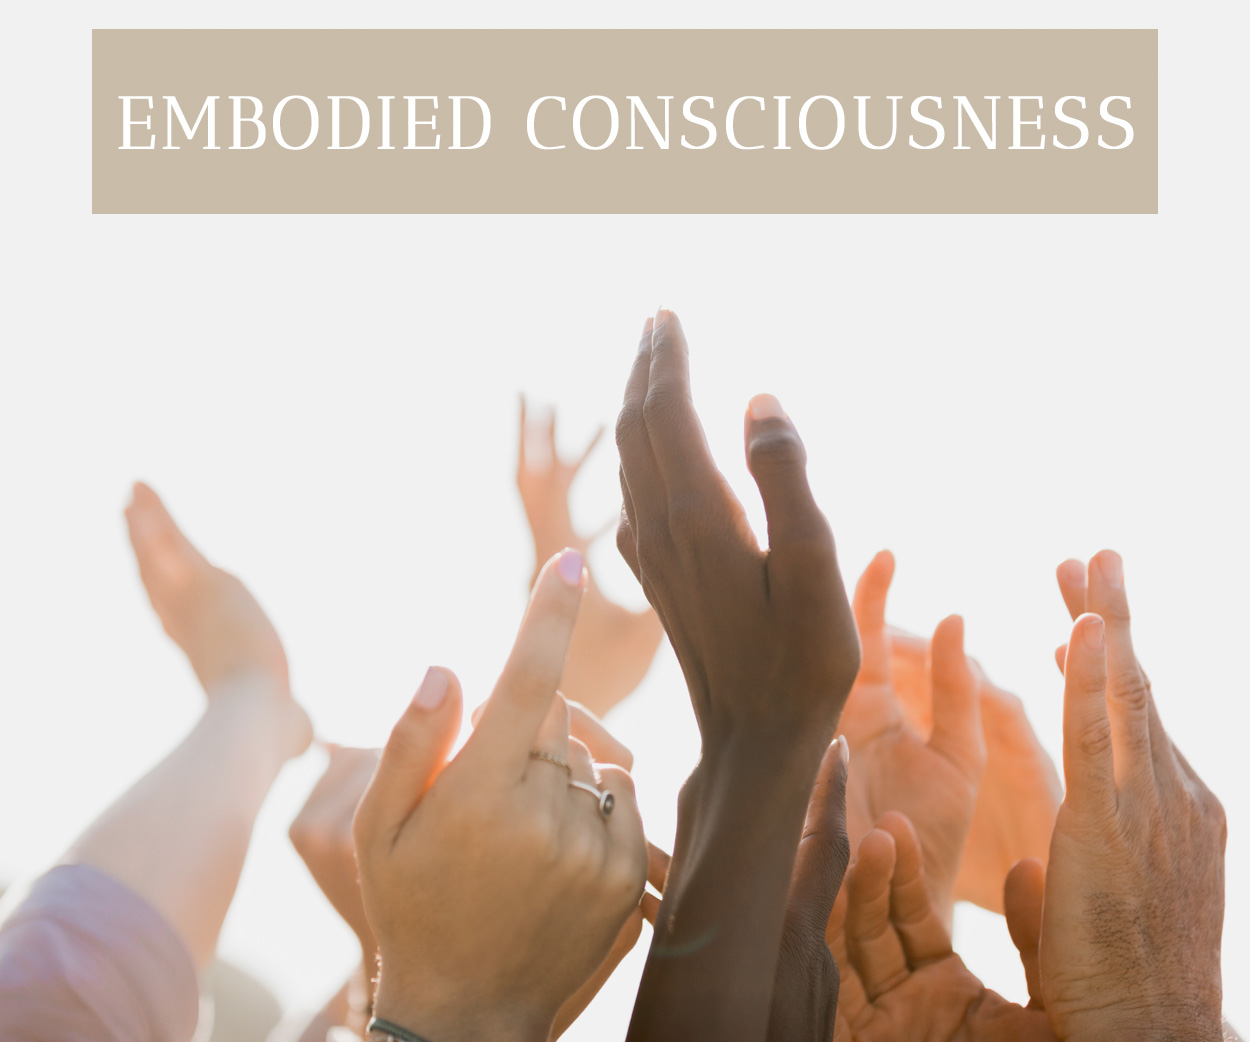 Embodied-Consciousness.jpg